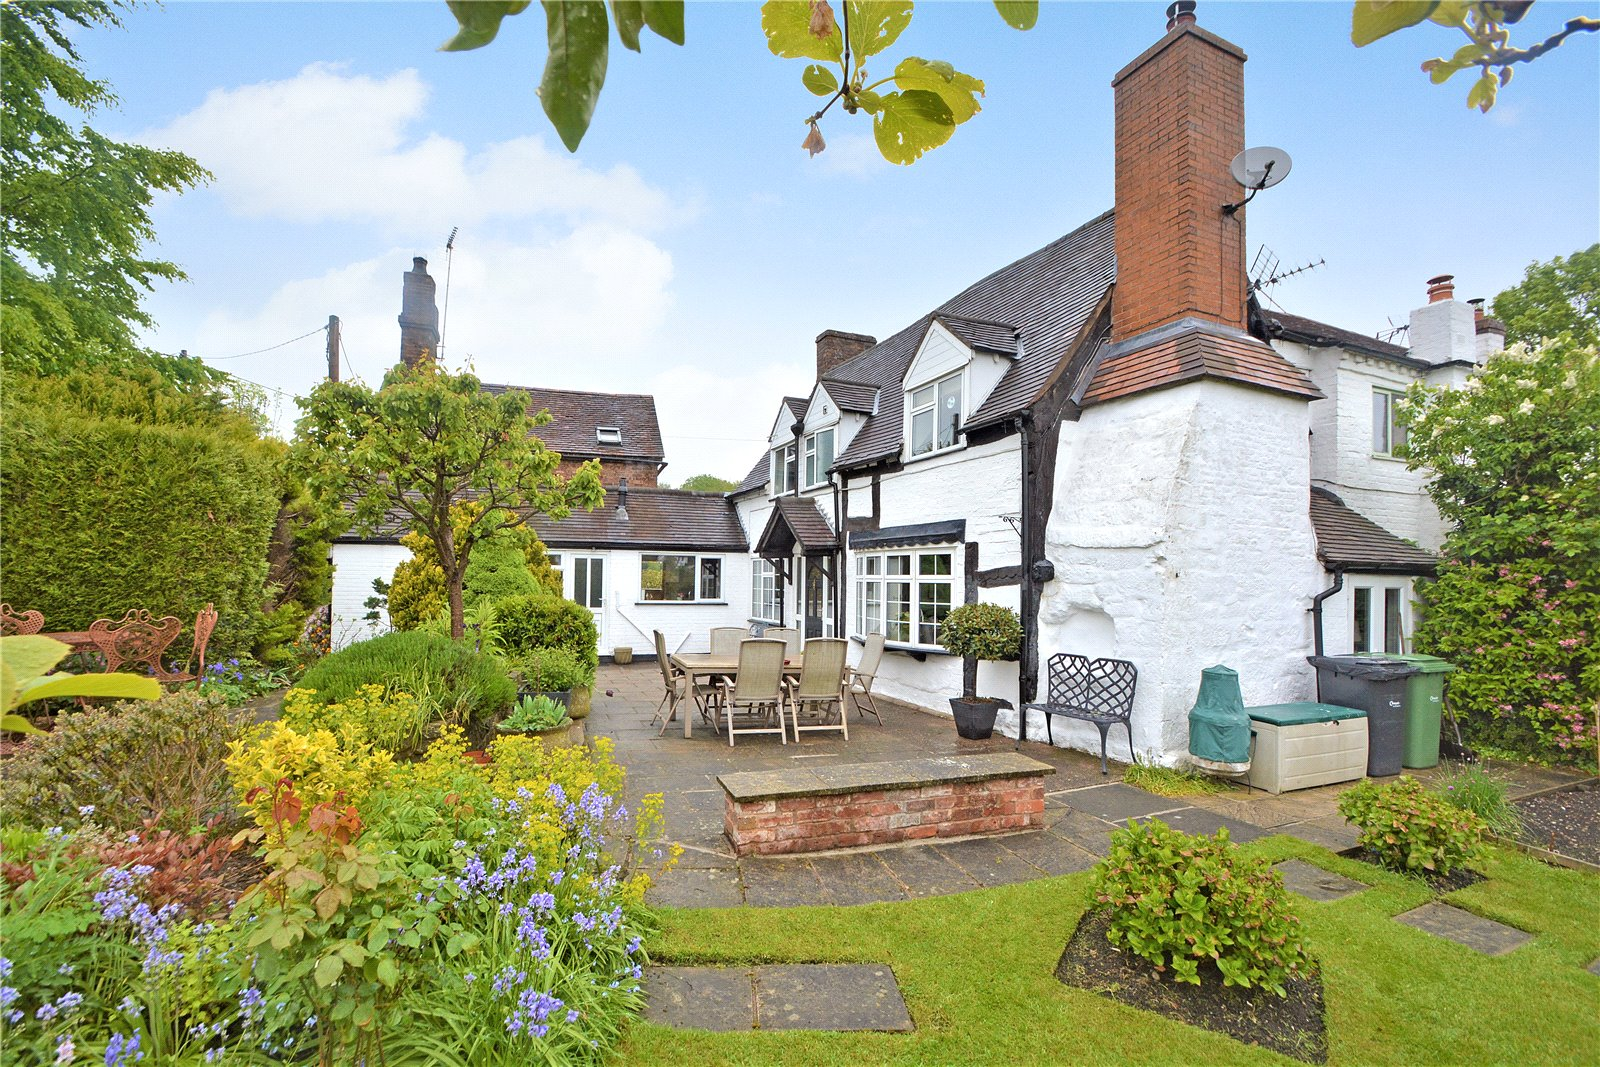 The Mines Cottage, 52 The Mines, Benthall, Broseley, Shropshire, TF12